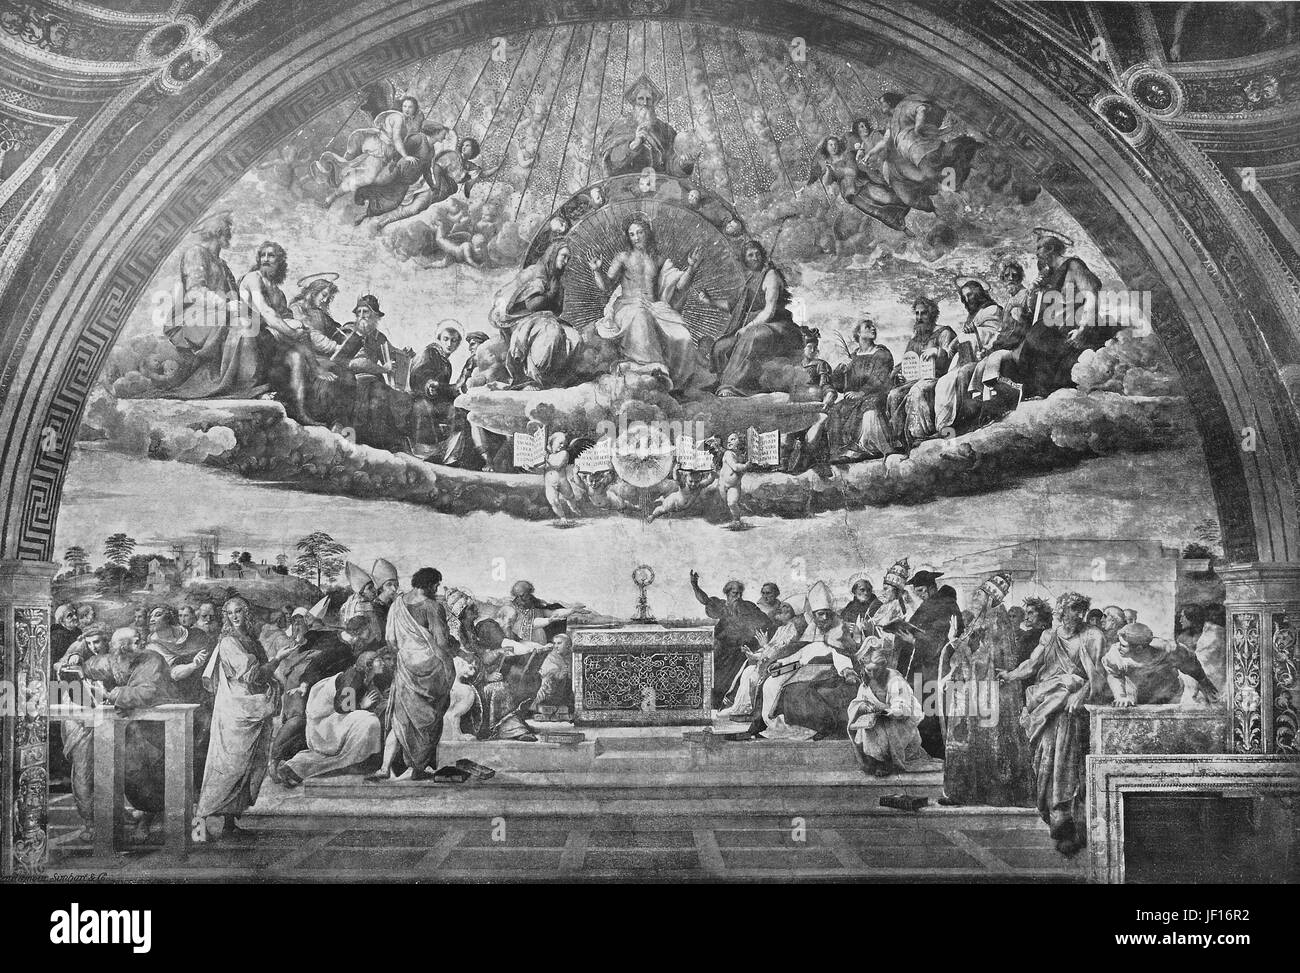 Historical image of The dispute, by Raphael, Vatican City State or the State of Vatican City, Stato della Città - Stock Image